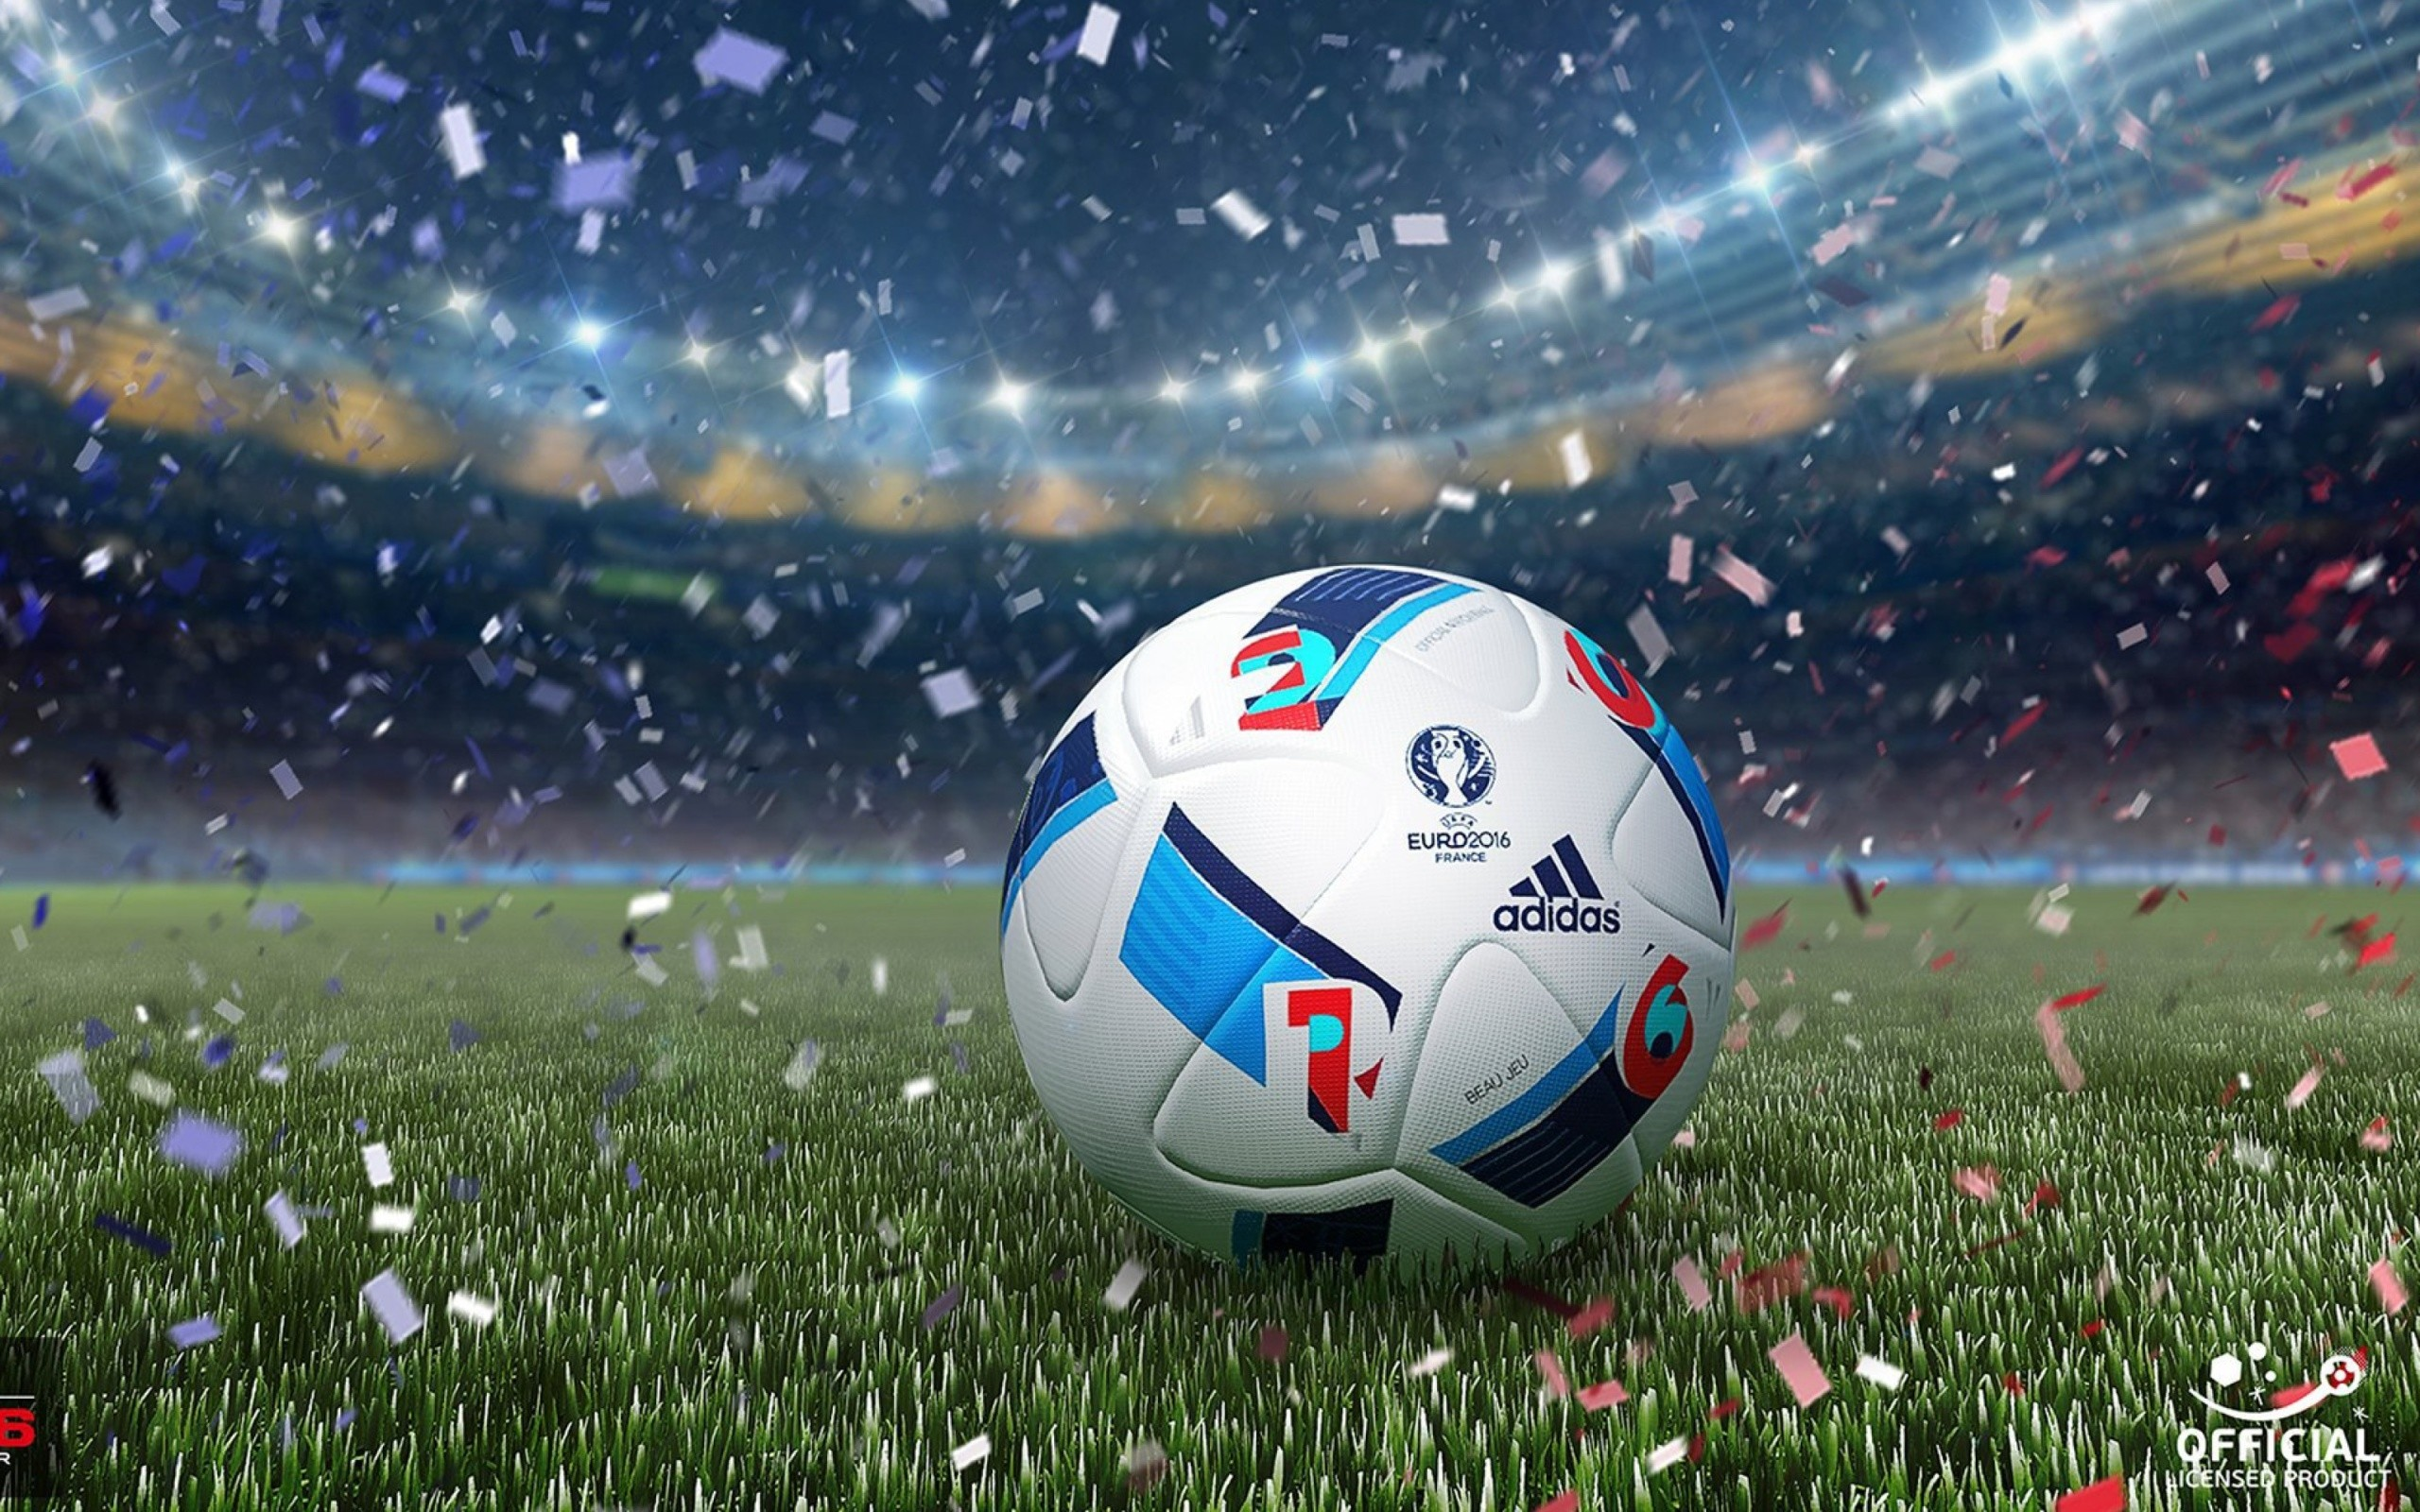 Football Wallpaper 4k: Football Wallpapers 2018 (77+ Background Pictures